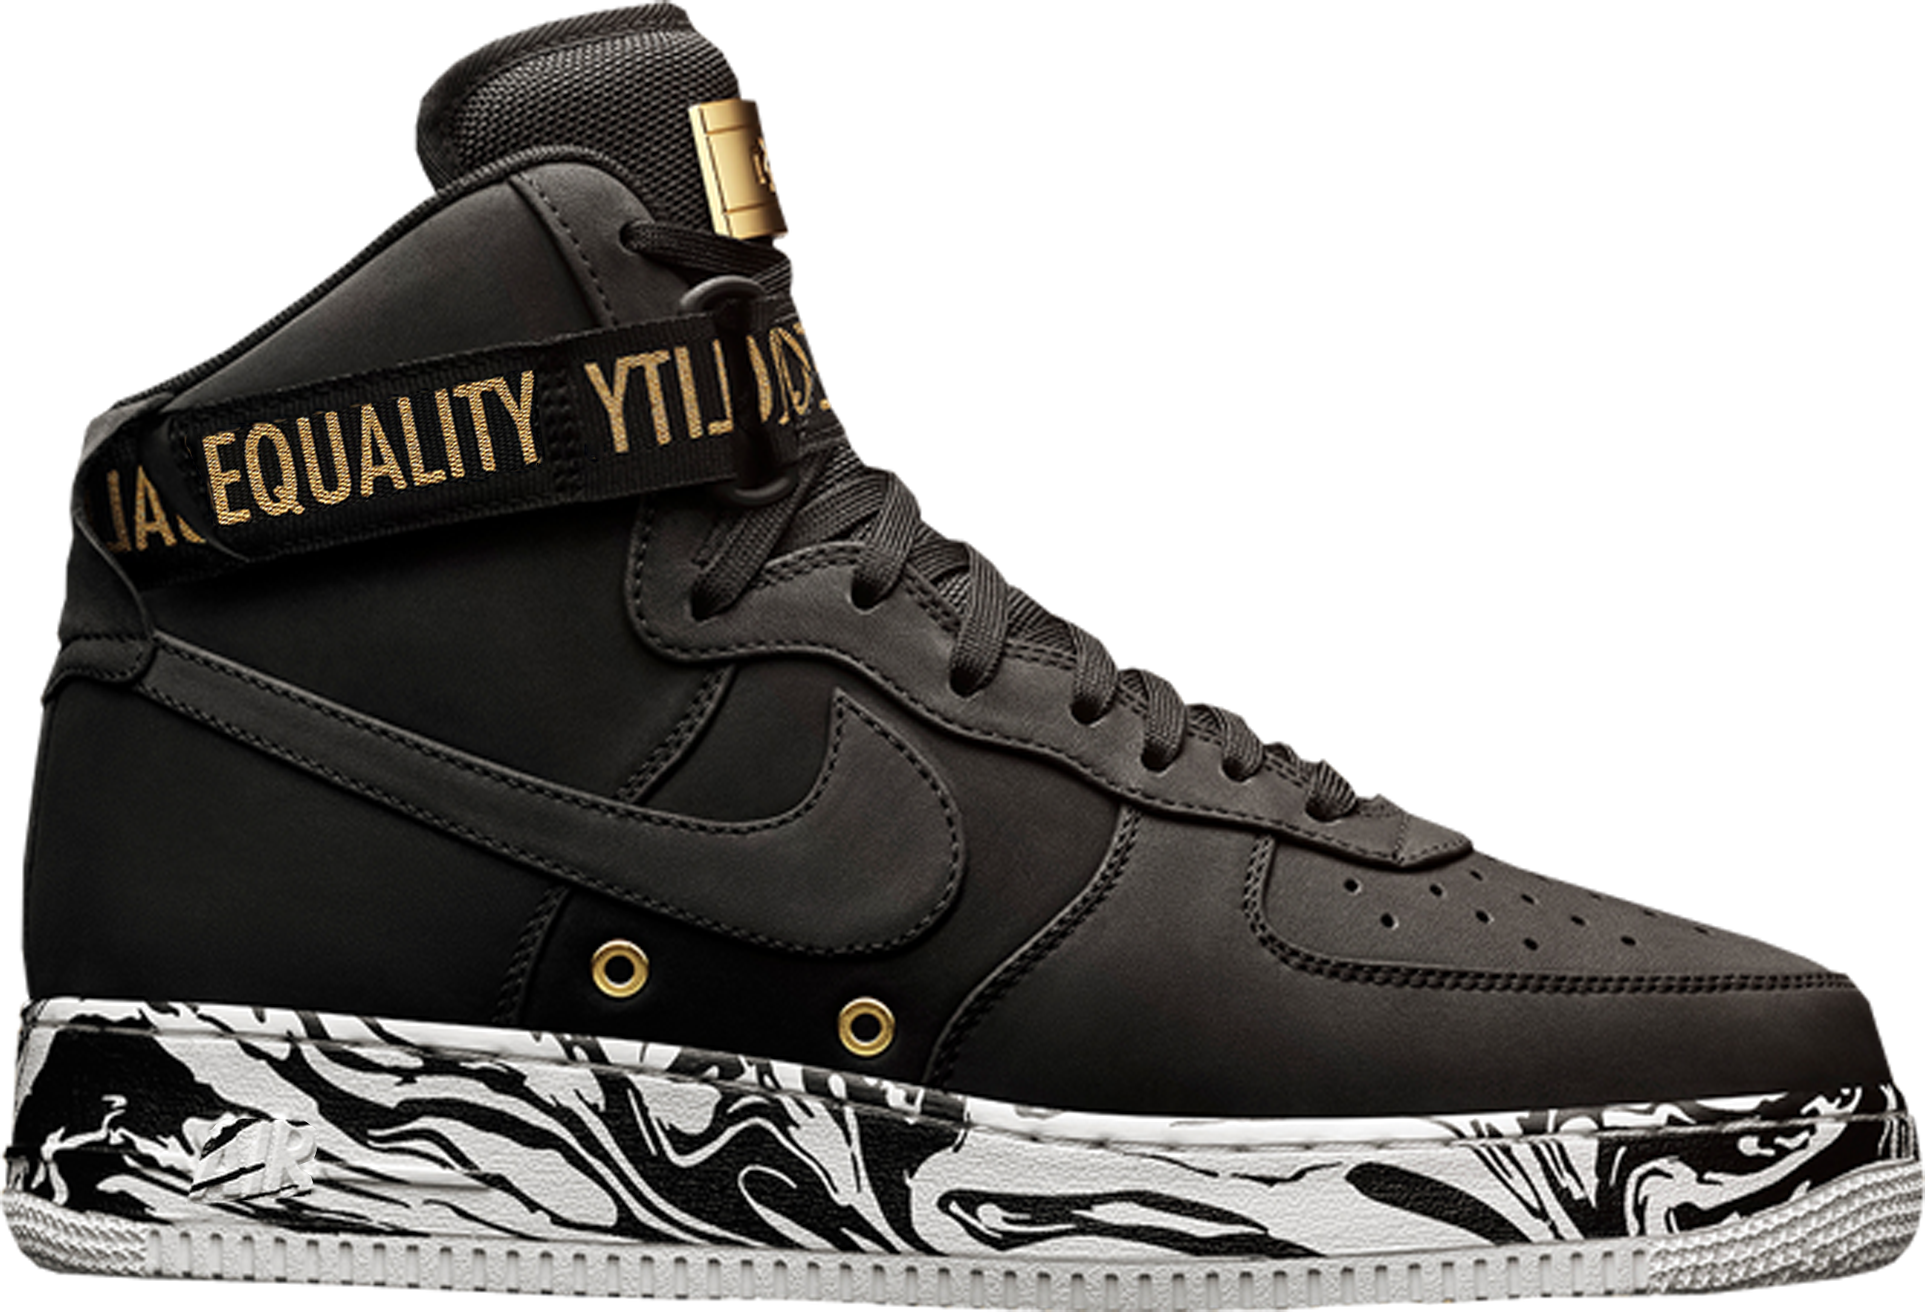 silver gold mens nike air force 1 high shoes. Black Bedroom Furniture Sets. Home Design Ideas